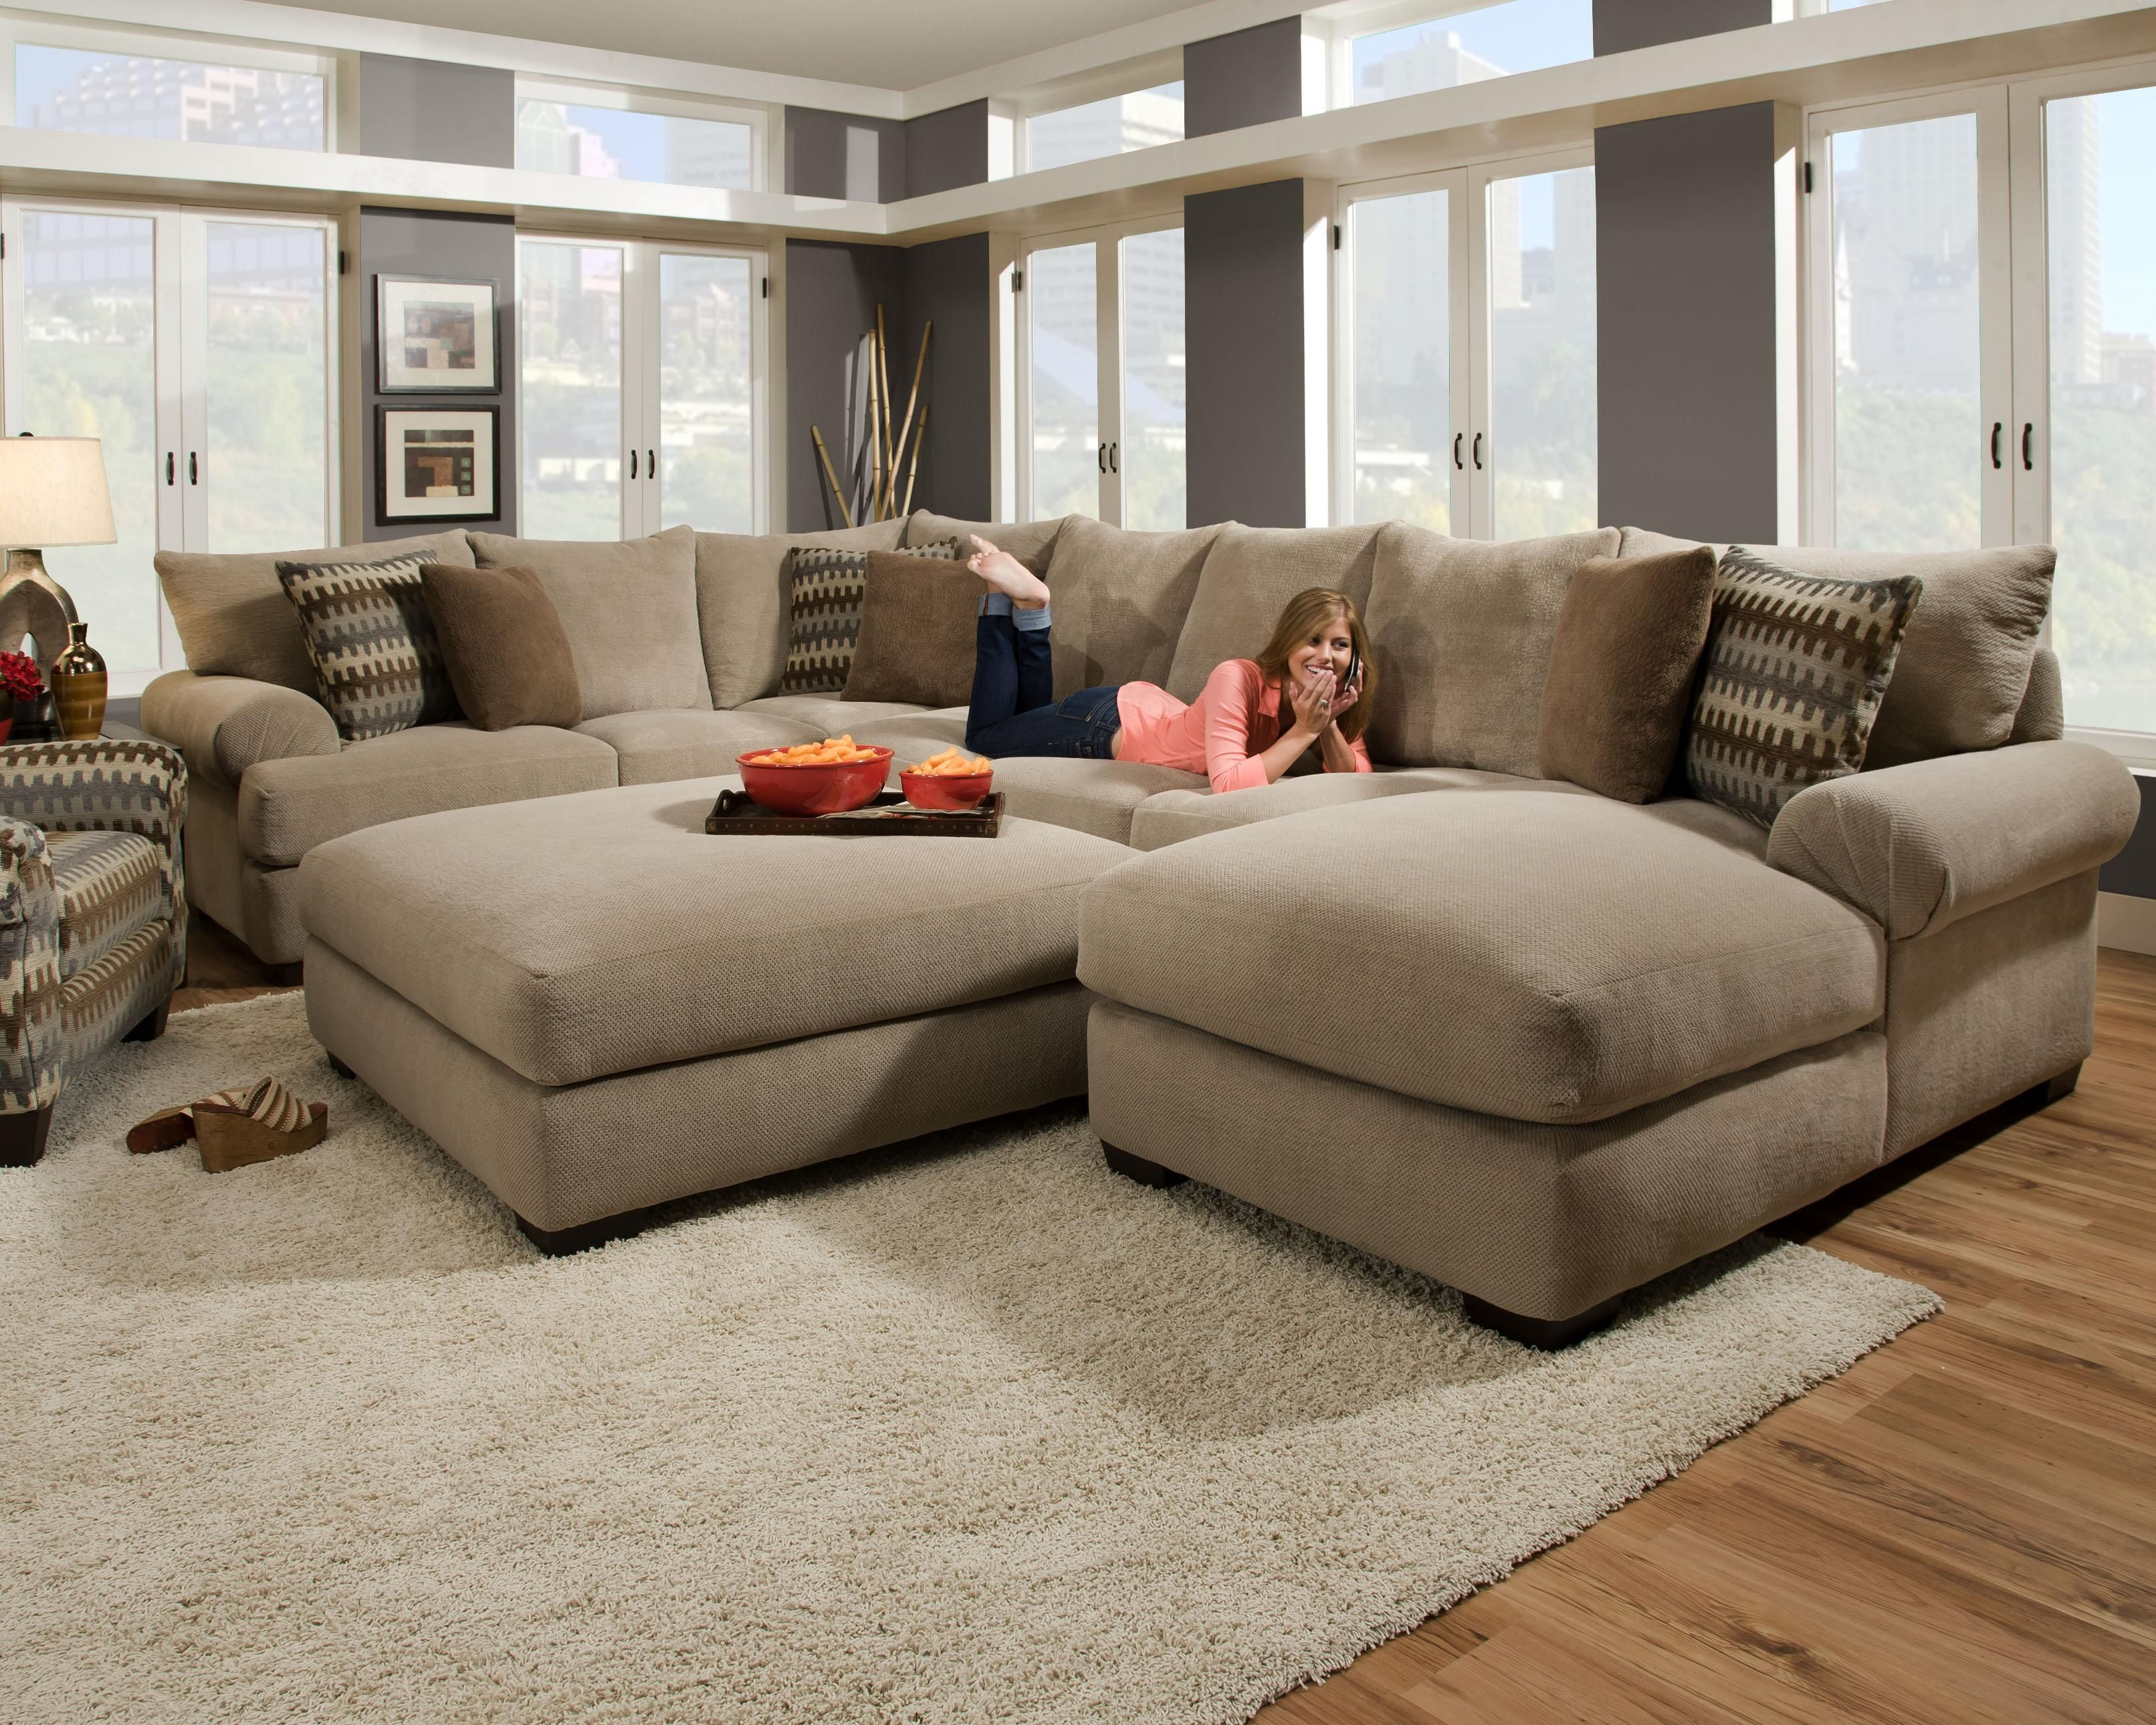 Oversized Sectional Sofas Your Selection Of A Designer Sofa Tells About Style And Character